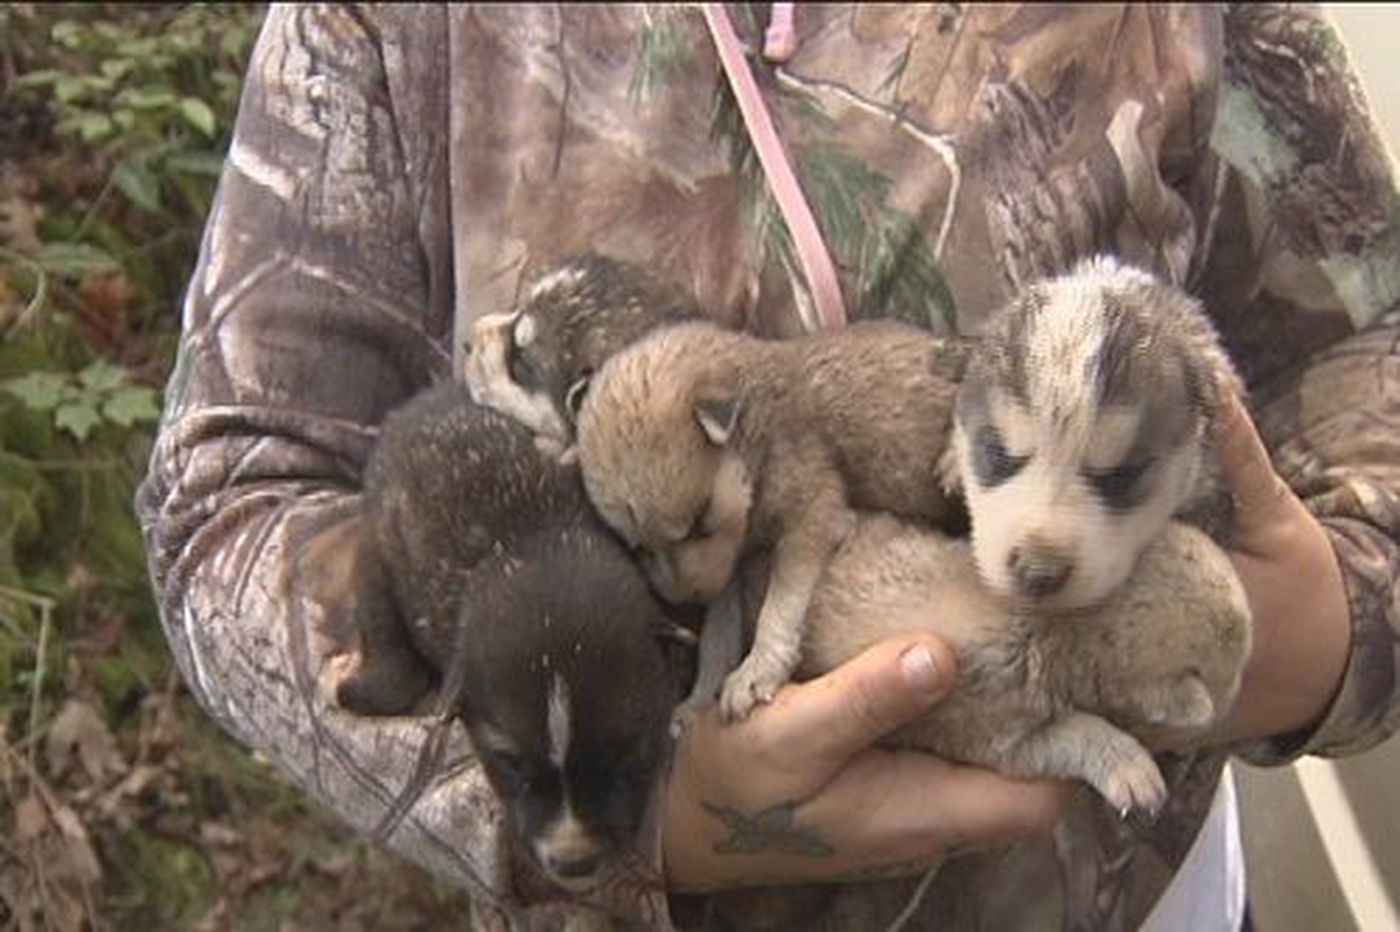 Officials say there's a chance wolf dog hybrids ate part of